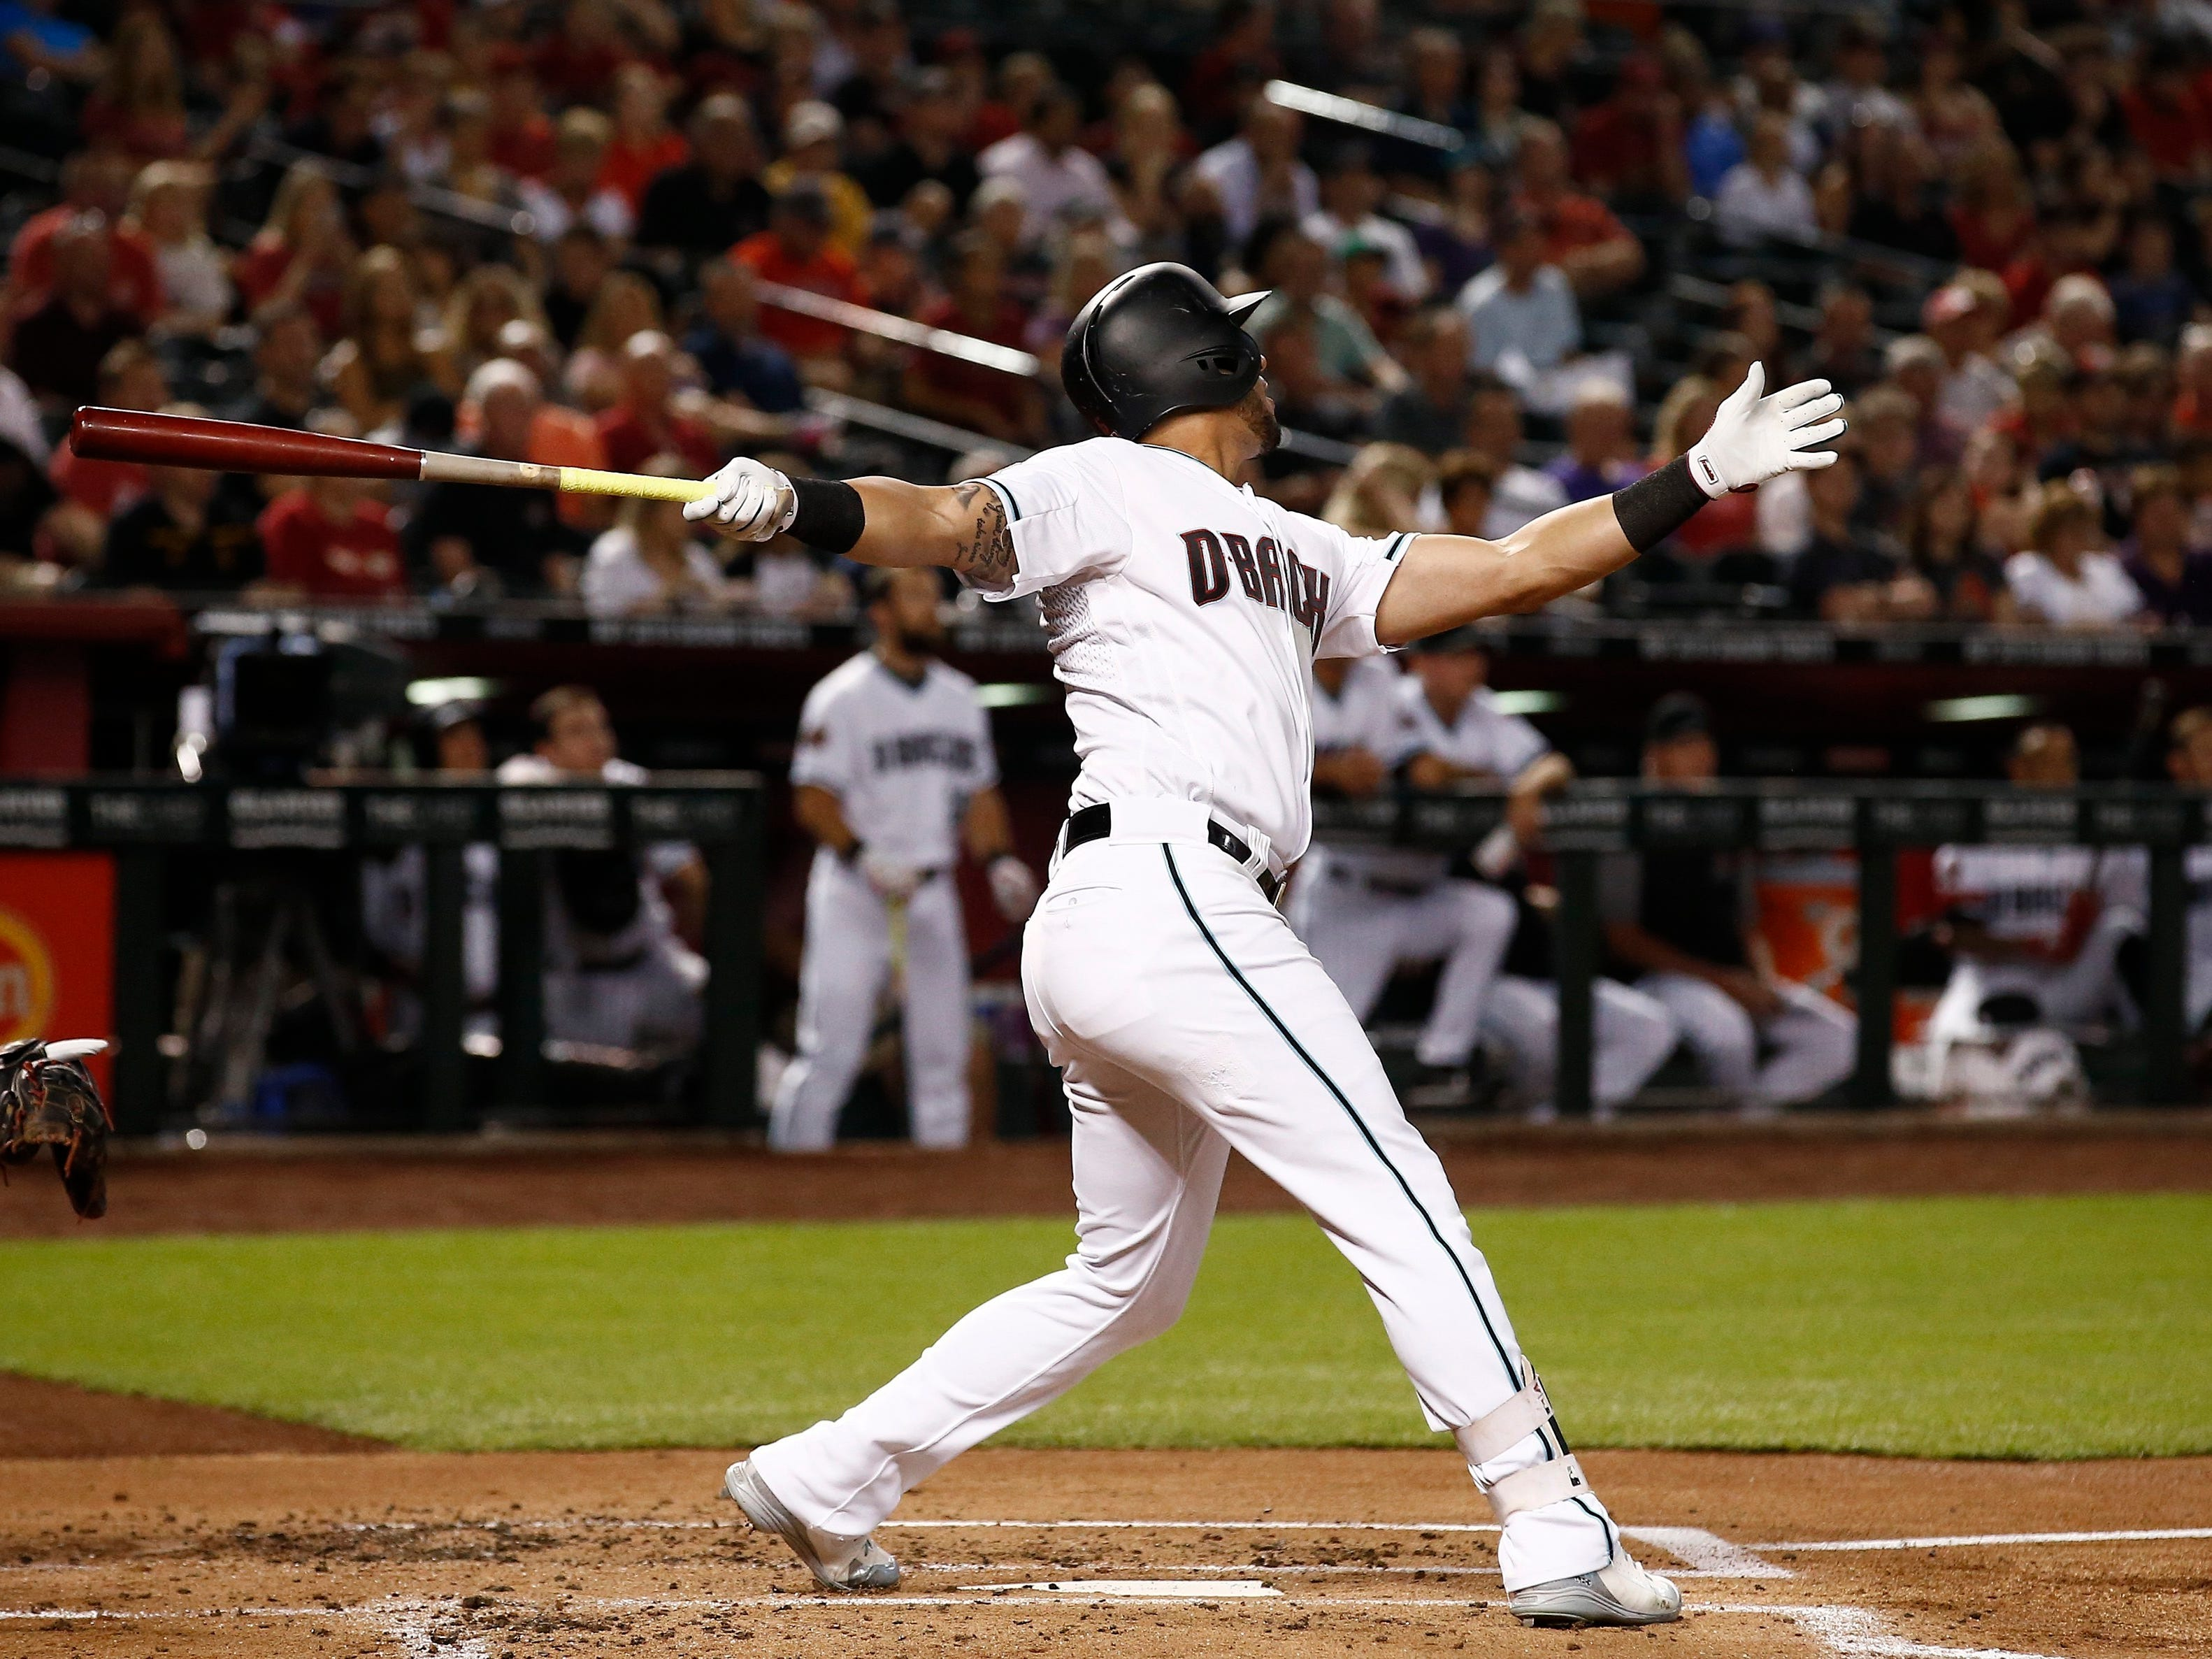 Arizona Diamondbacks' David Peralta watches the flight of his two-run home run against the Los Angeles Angels during the first inning of a baseball game Tuesday, Aug. 21, 2018, in Phoenix.